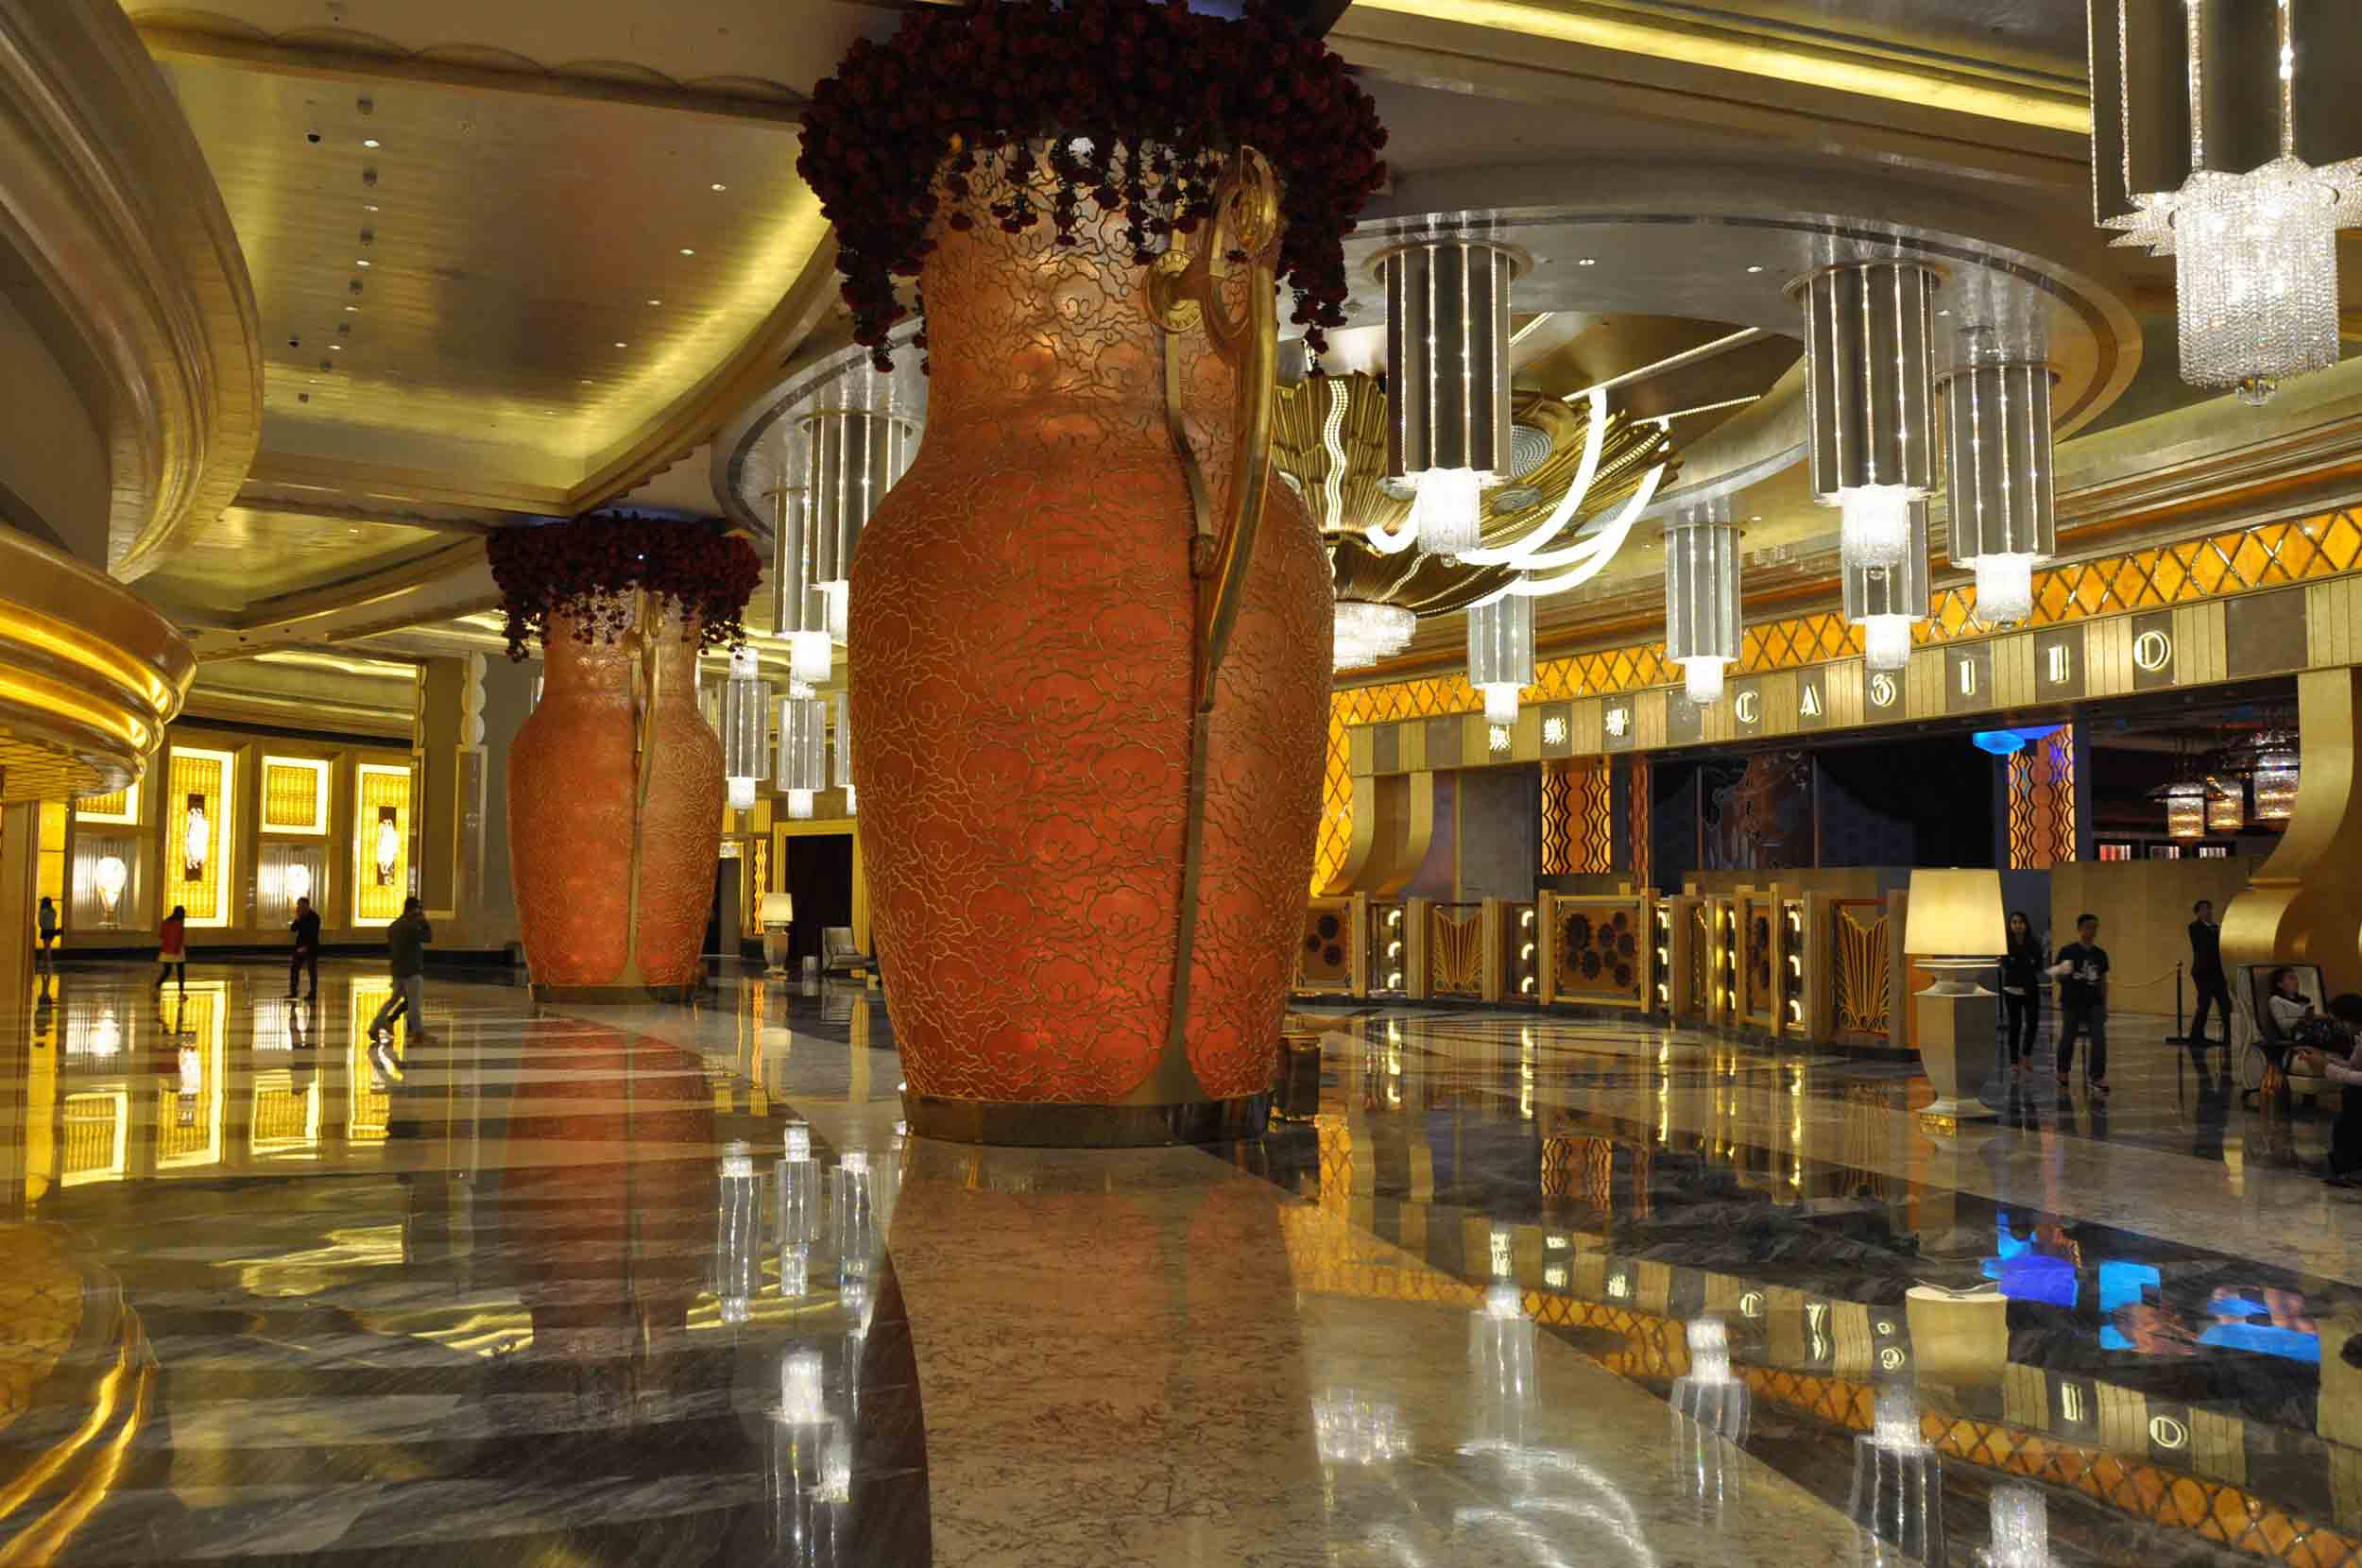 Studio City Macau lobby